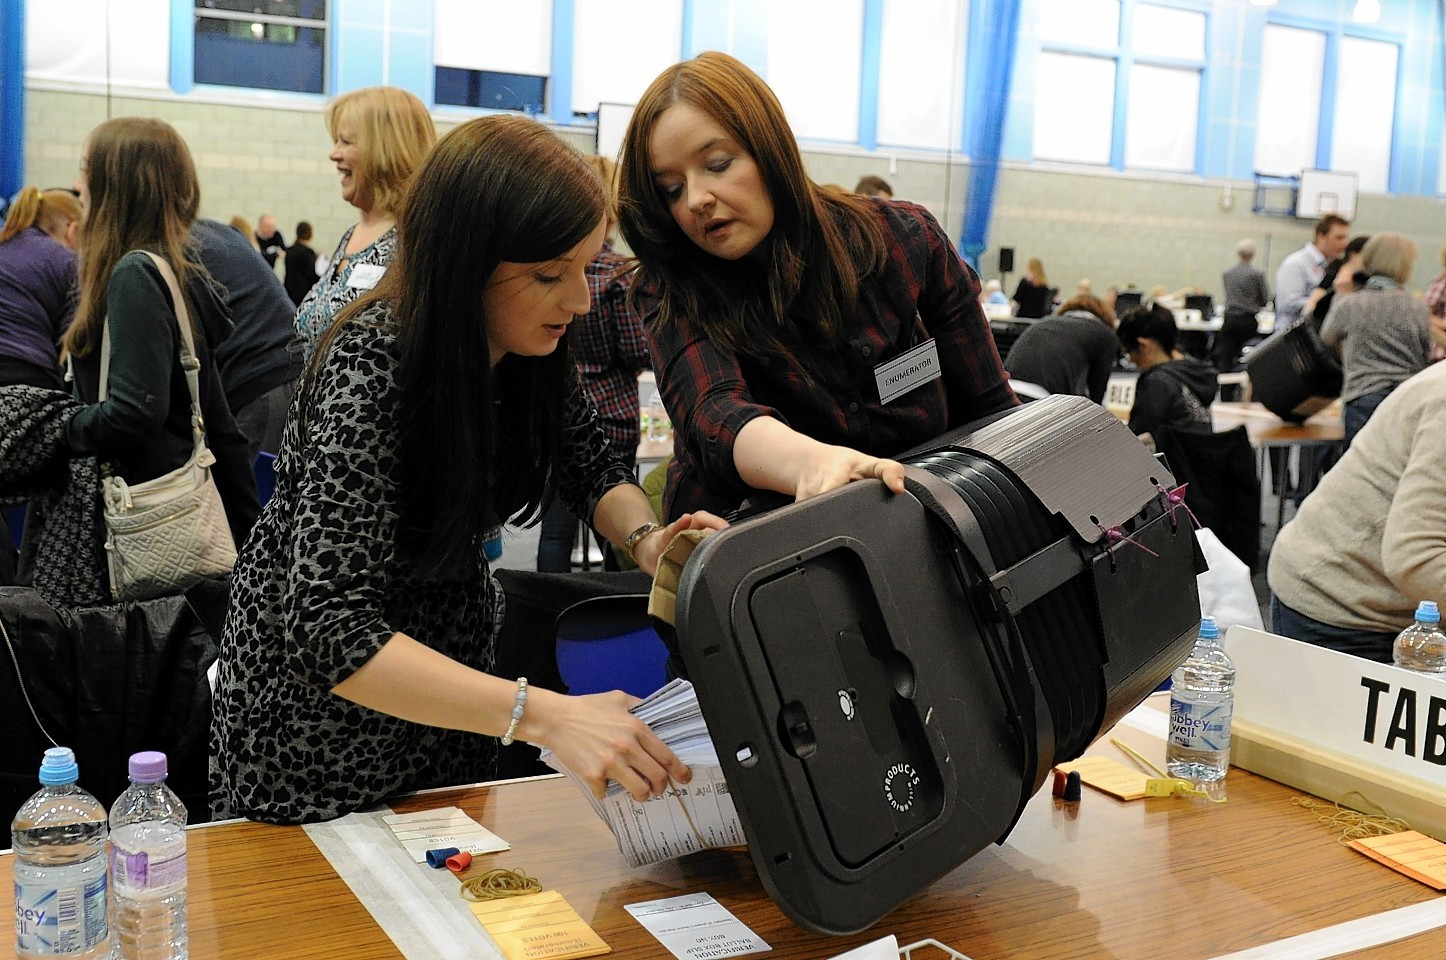 Aberdeen North and South count at Robert Gordon University (RGU).